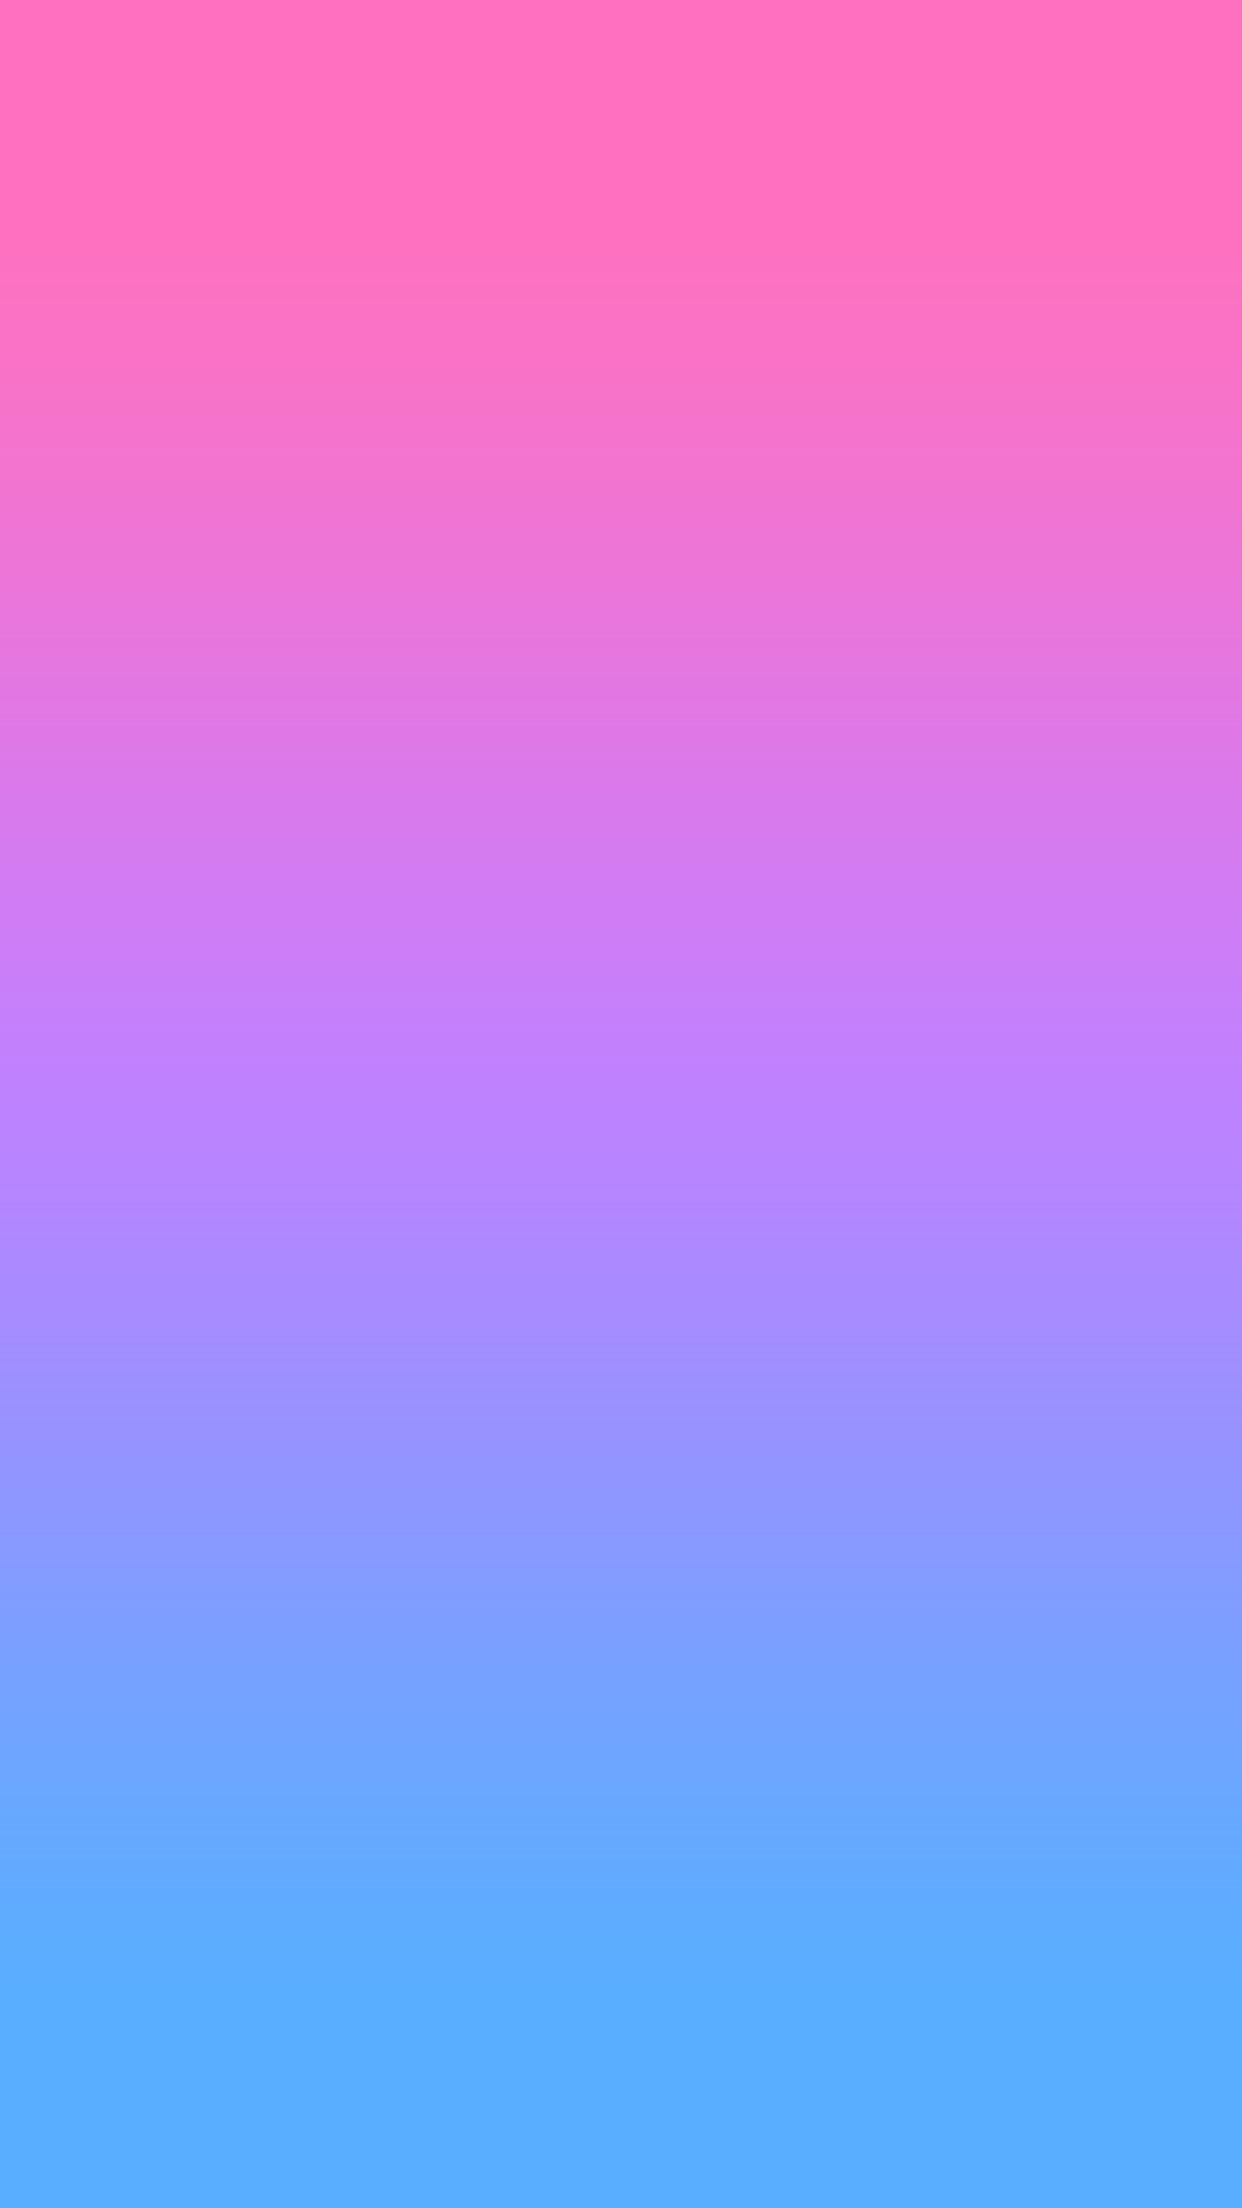 1242x2208 pink, purple, blue, violet, gradient, ombre, wallpaper, background,